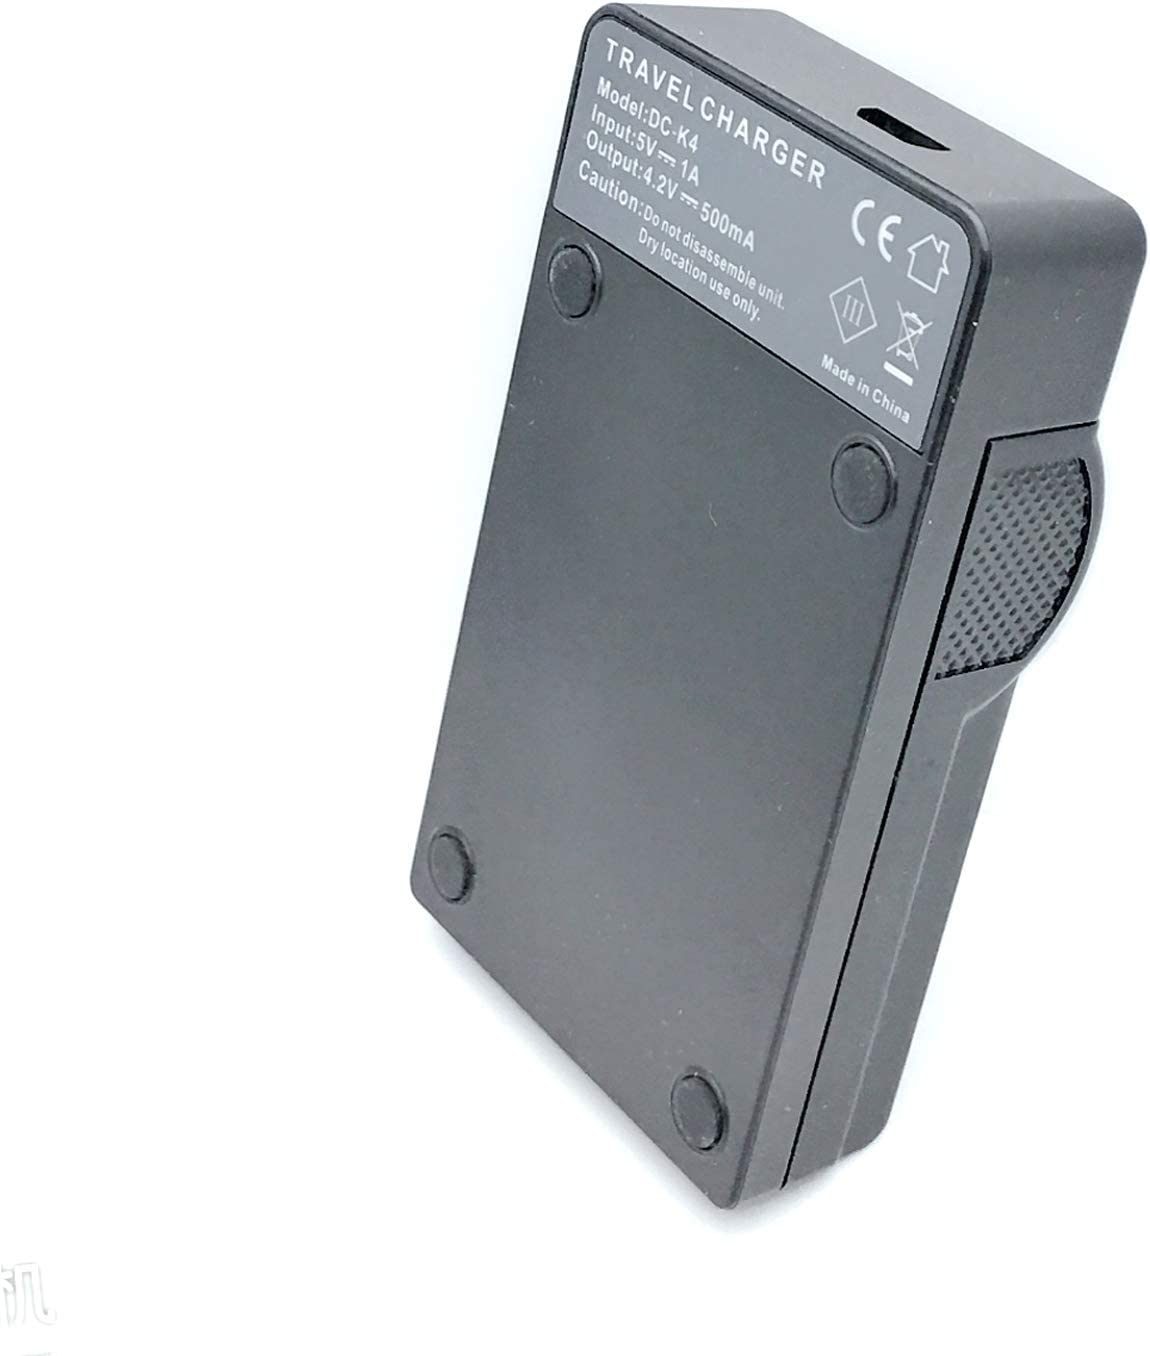 SCD87 SCD86 USB Battery Charger for Samsung SCD80 SC-D87 Digital Video Camcorder SC-D80 SC-D86